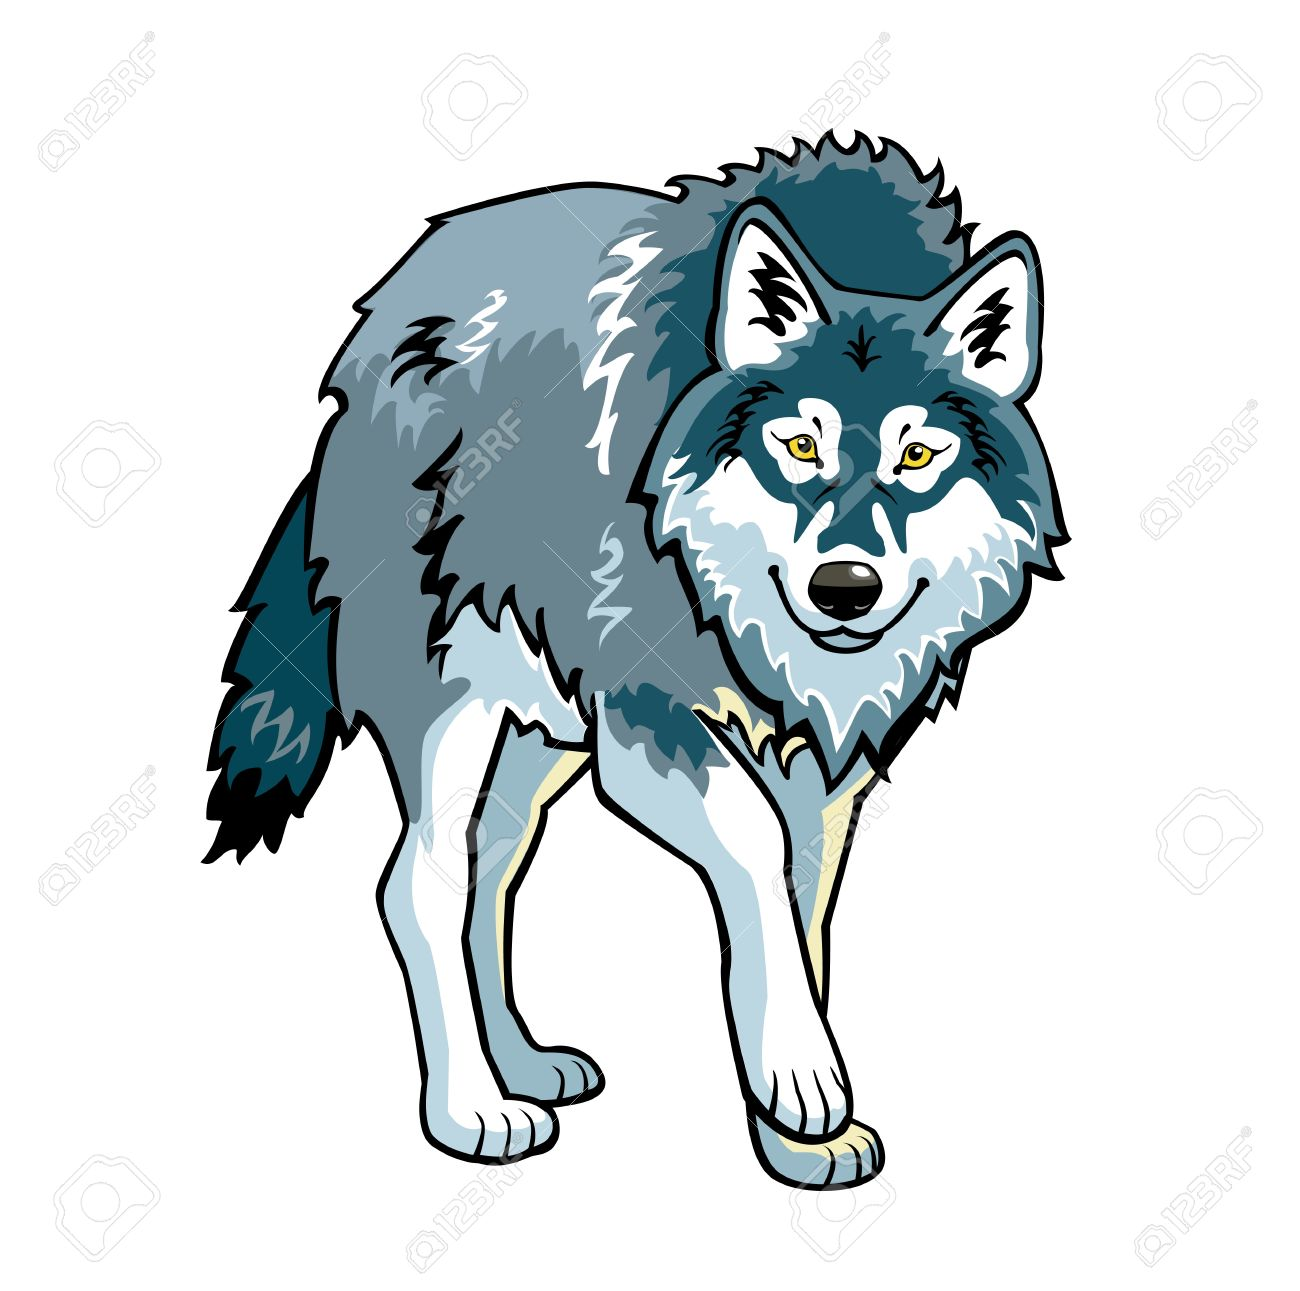 Free wolf images clipart banner freeuse Best Wolf Clipart #26232 - Clipartion.com banner freeuse